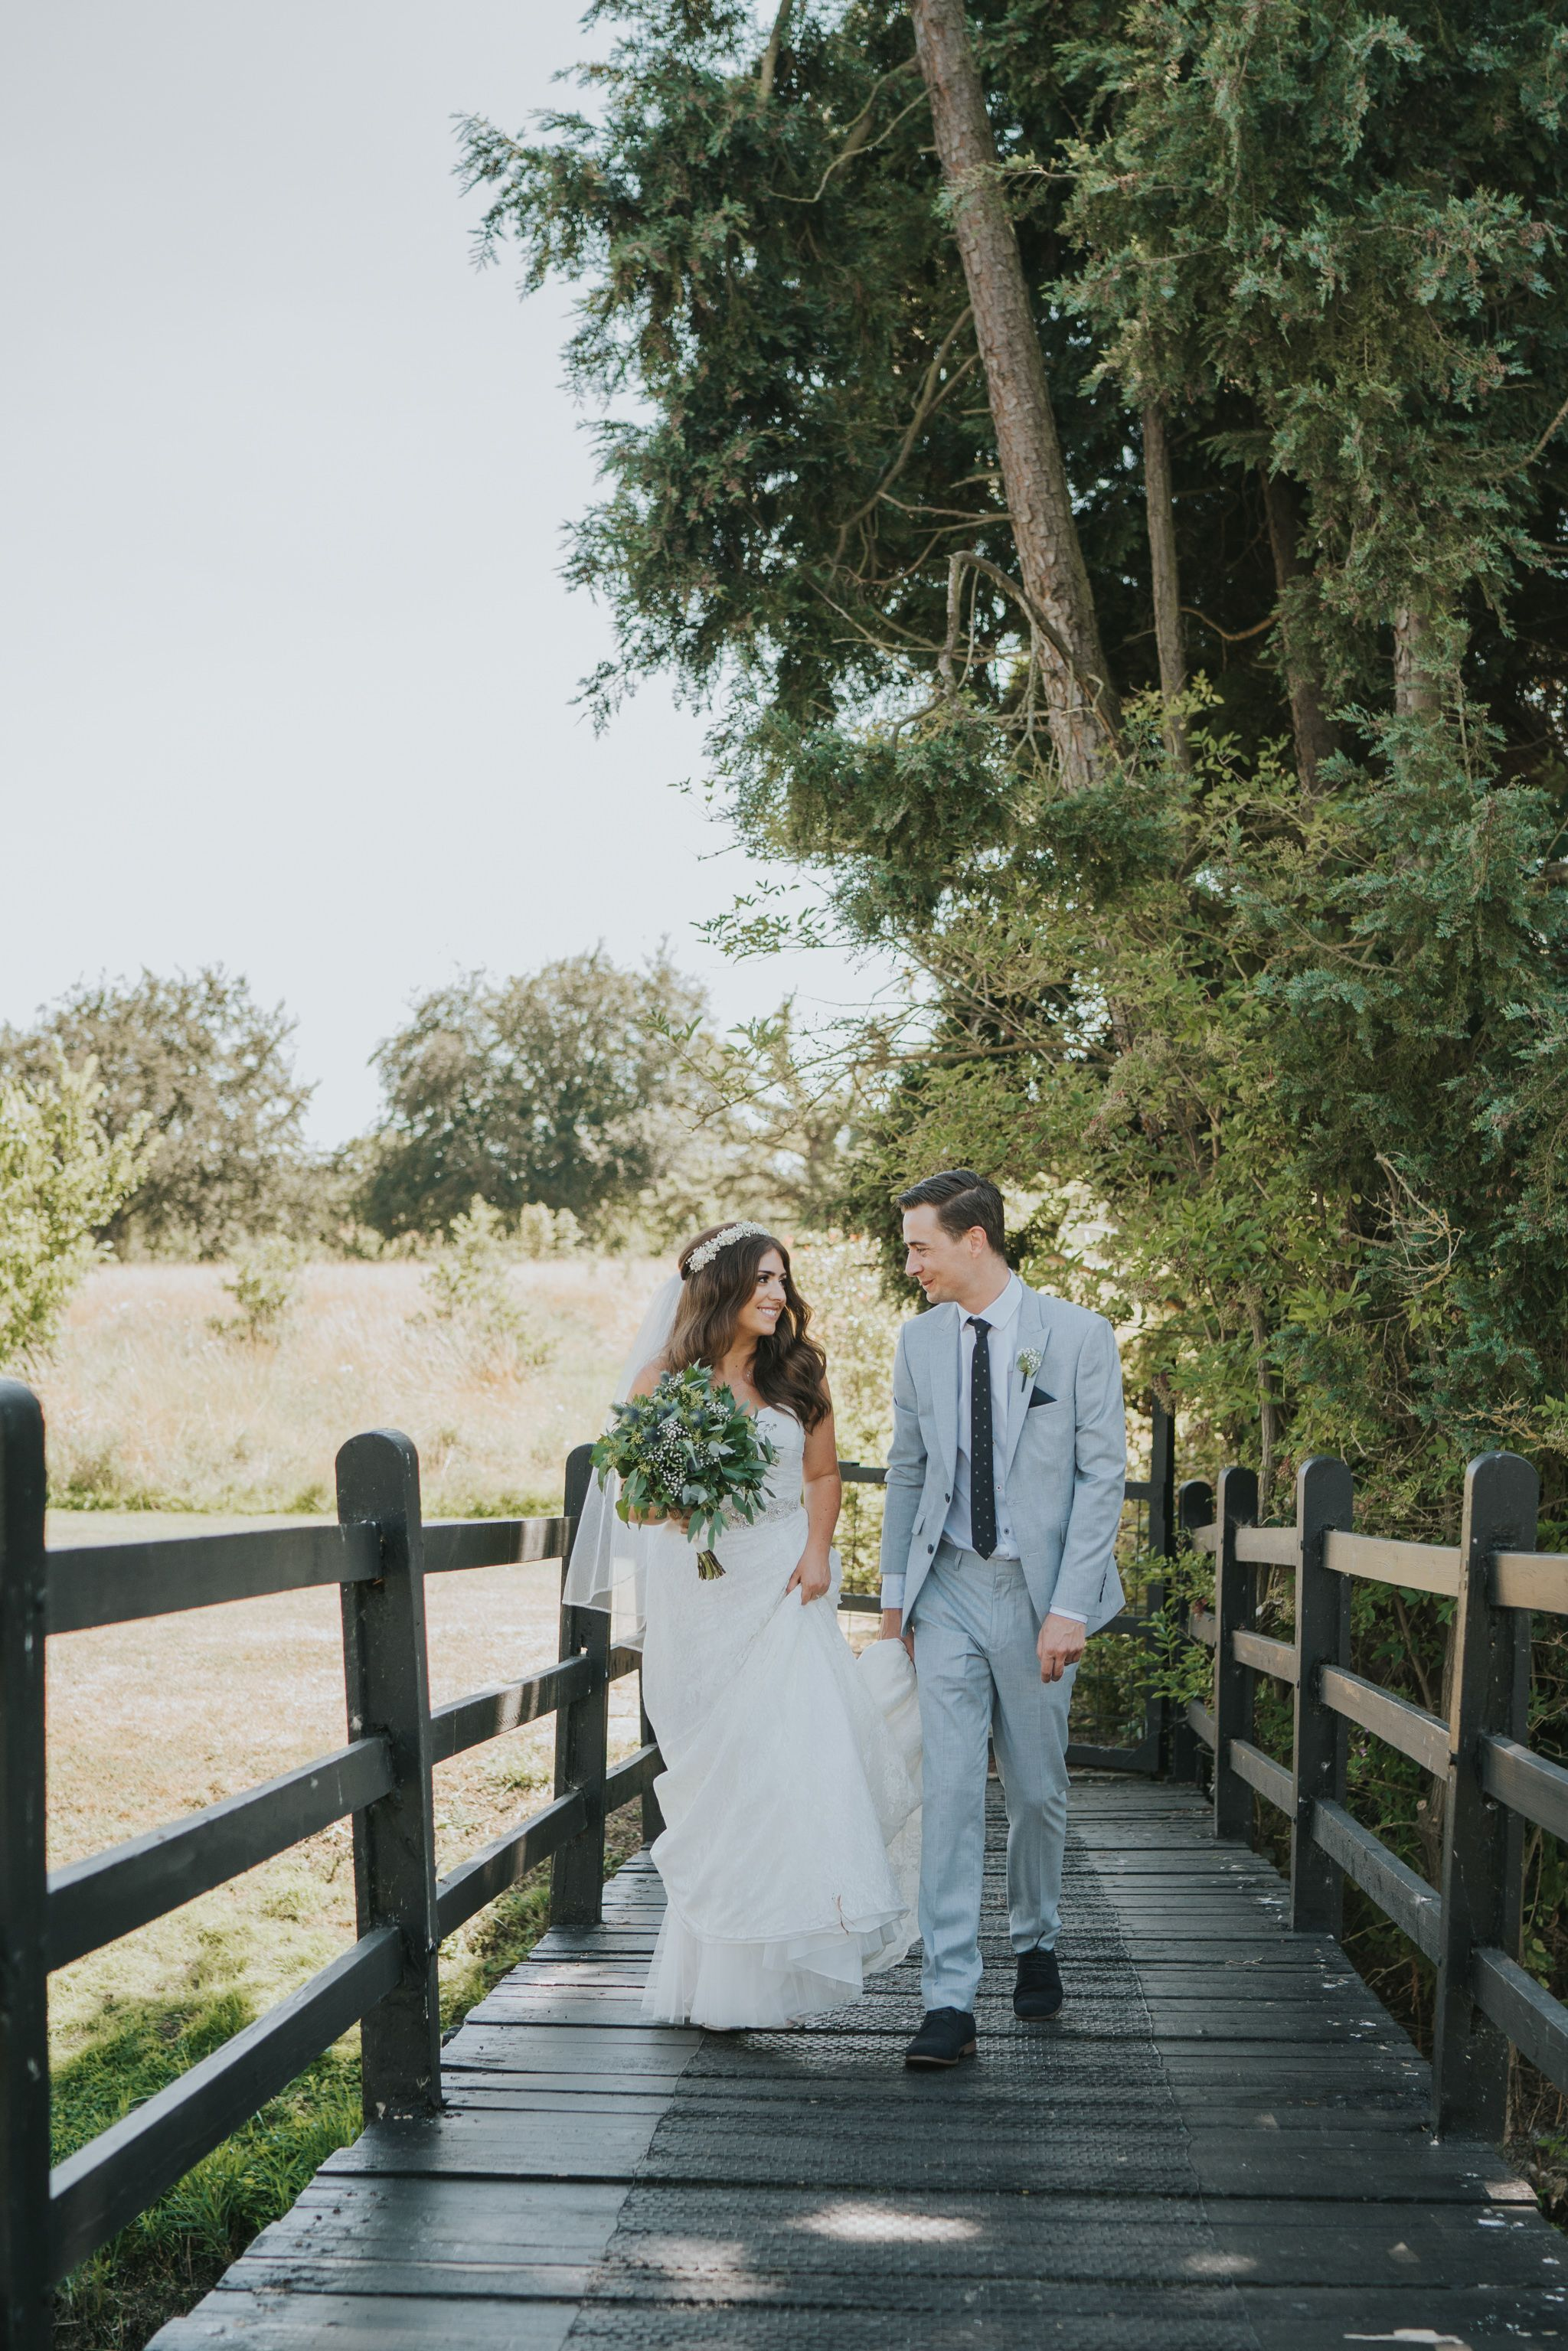 Relaxed outdoor boho diy wedding day at prested hall essex wedding